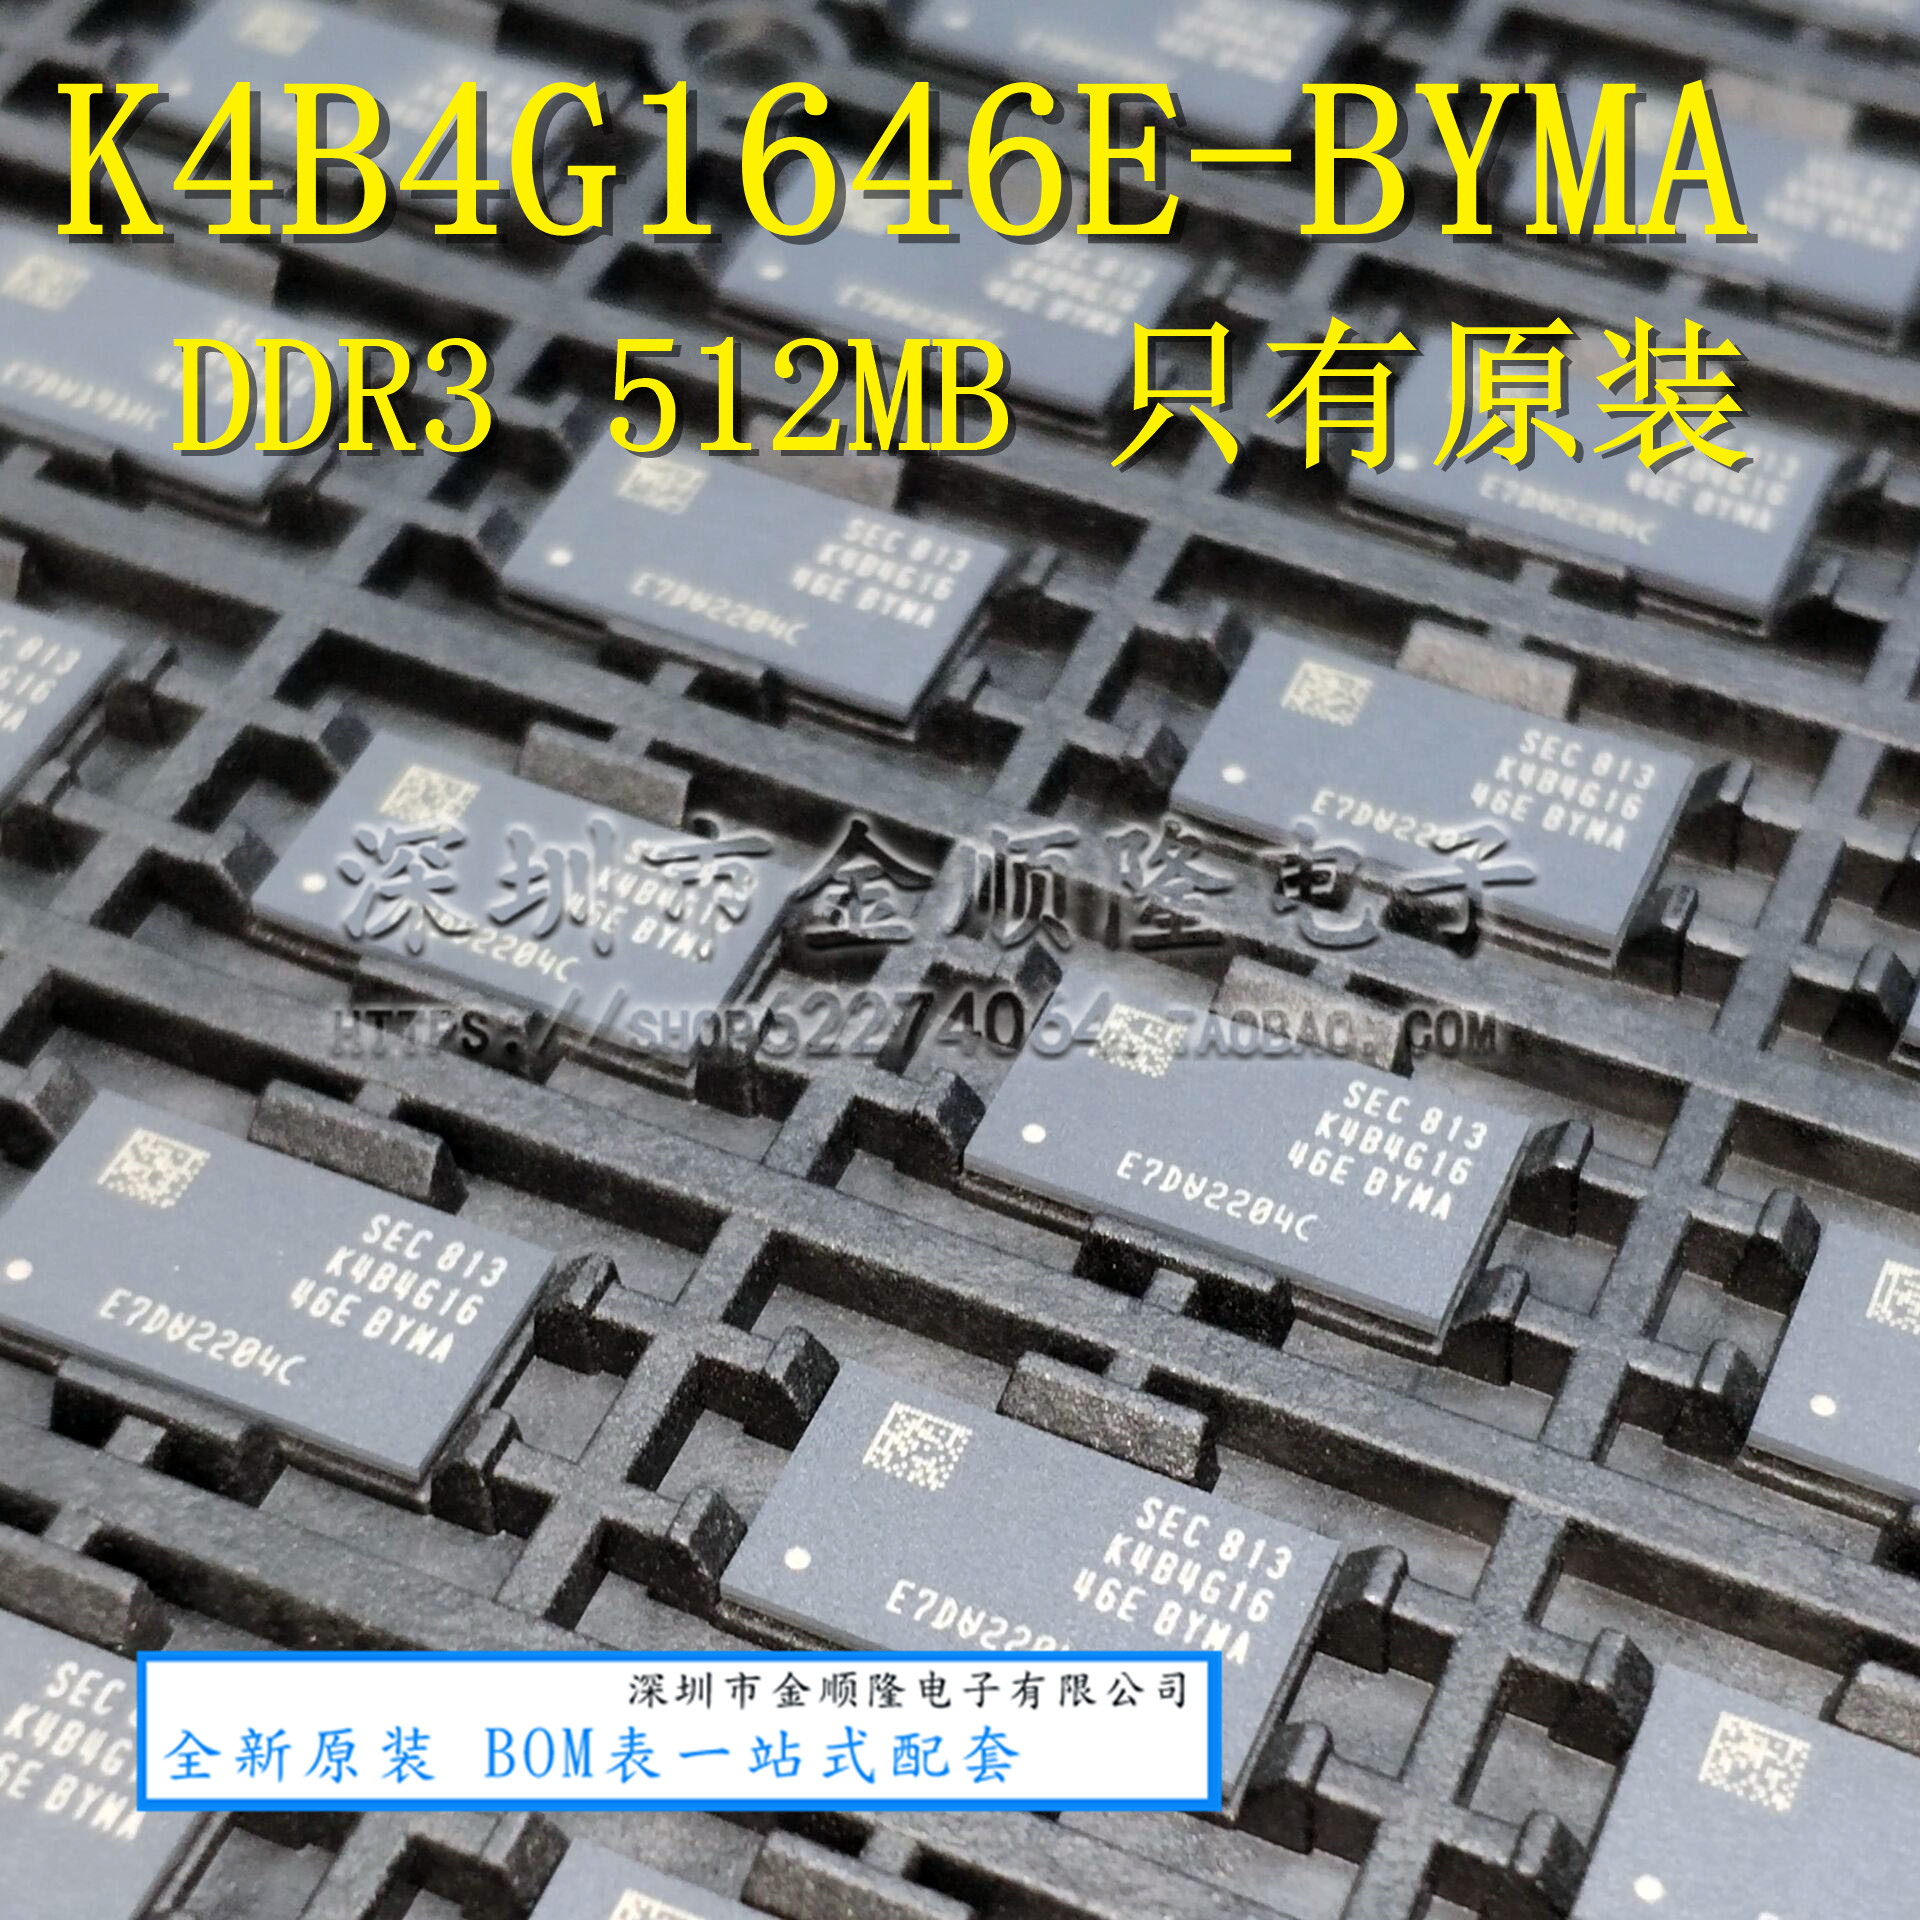 Only the original DDR3 16 * 4GB k4b4g1646e-byma BGA is directly photographed at real price